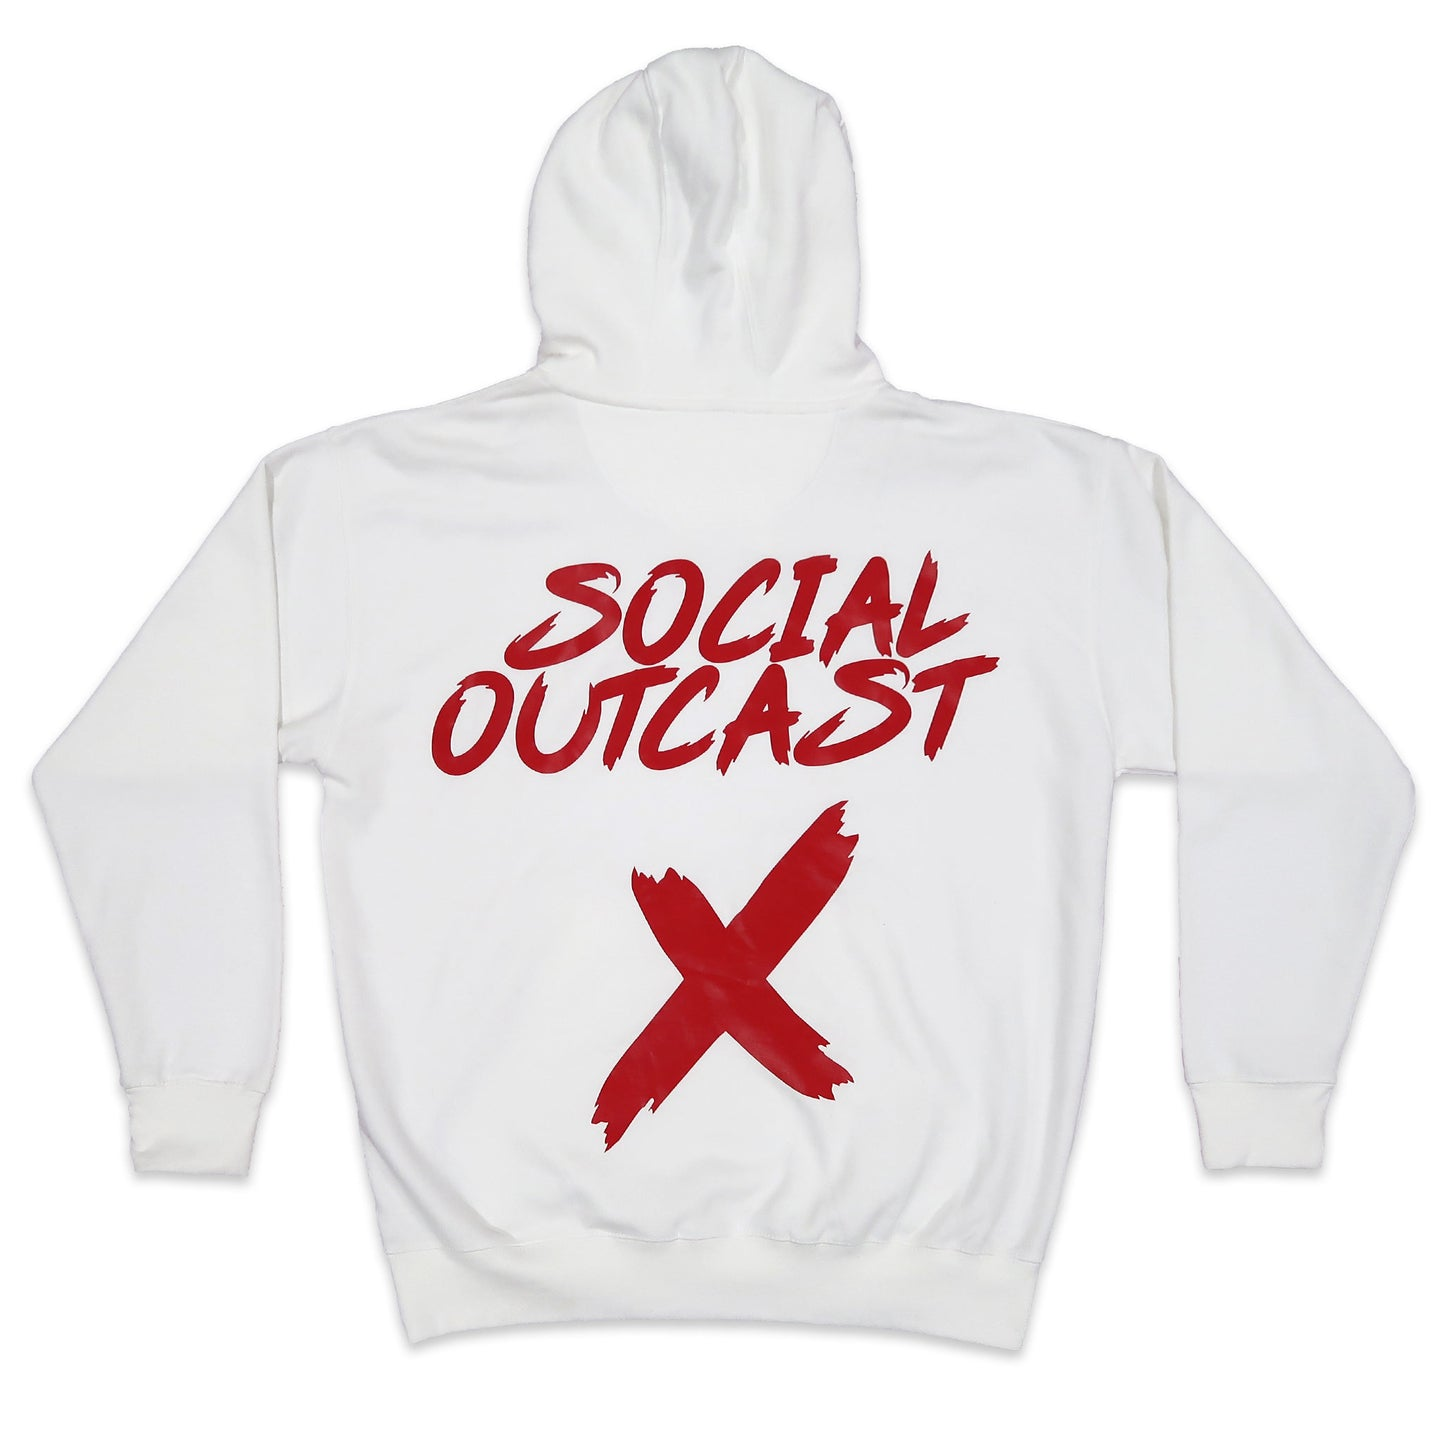 Social Outcast Hoodie in White and Red